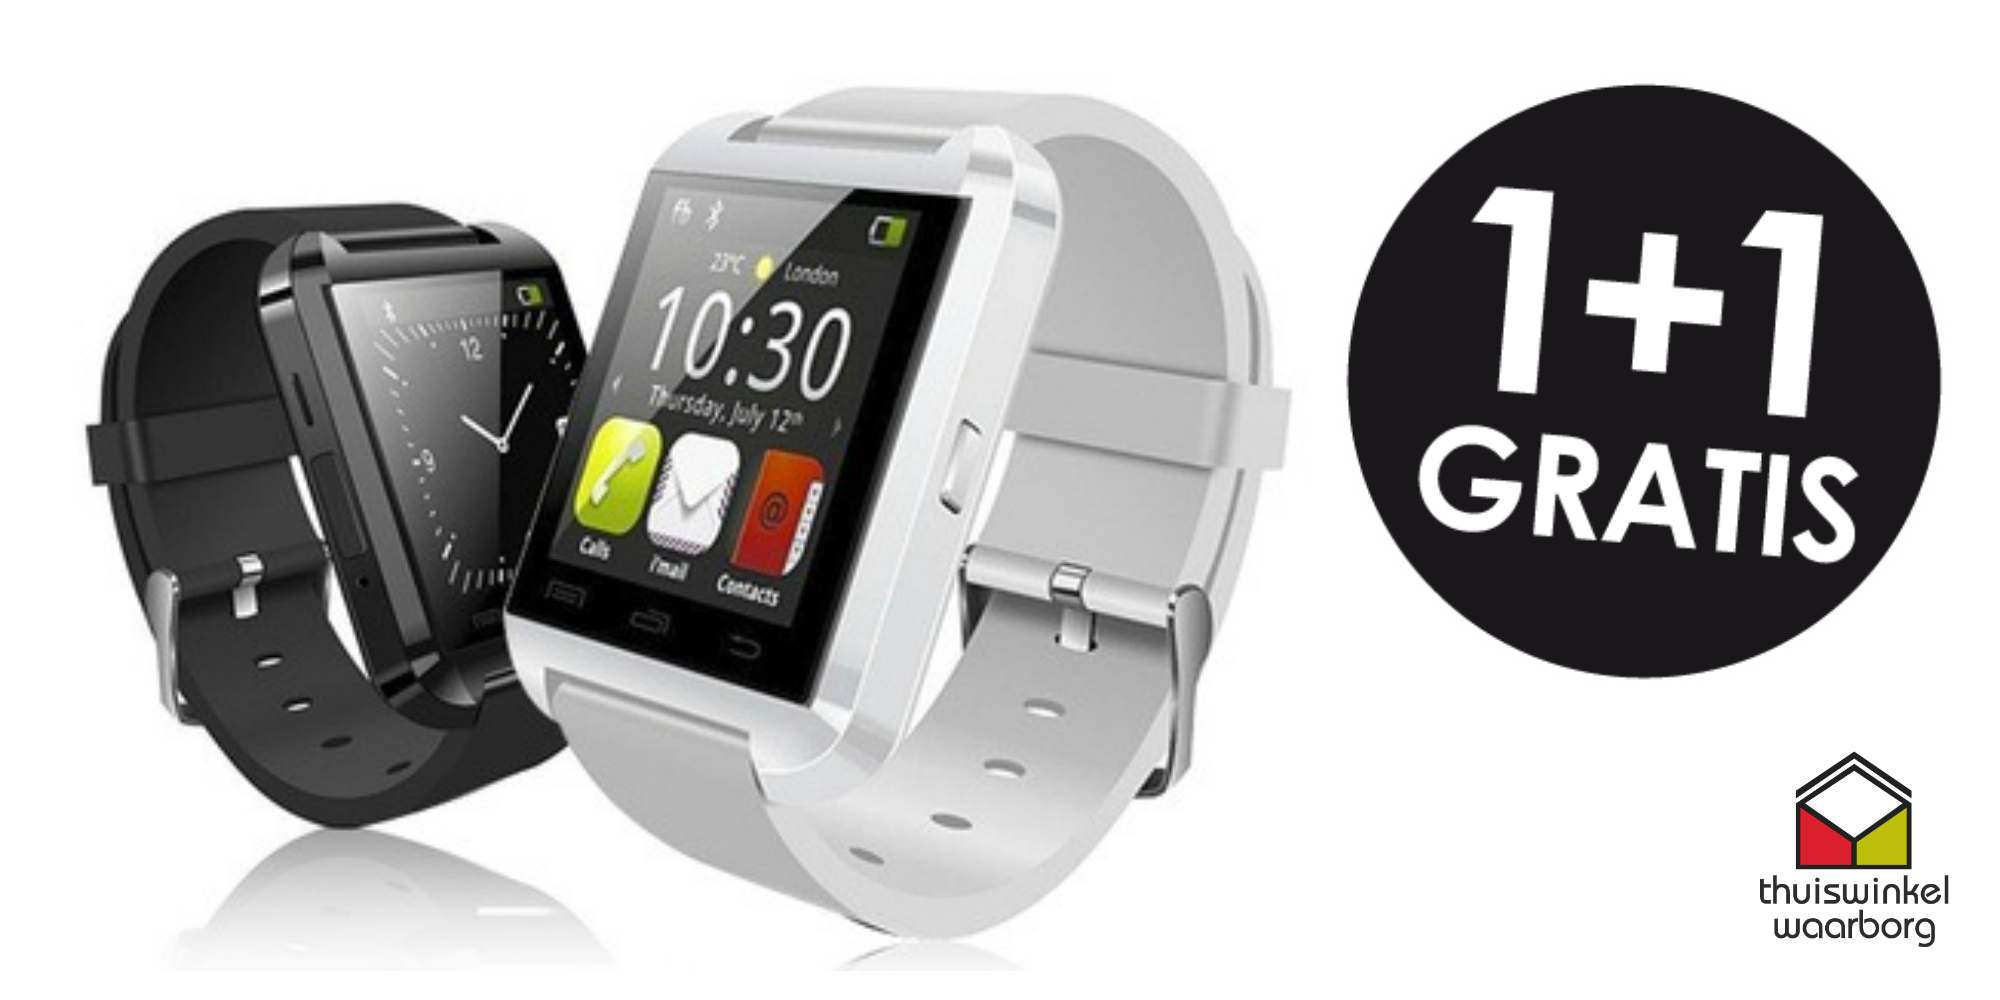 One Day Price - SMARTWATCH OP=OP DEAL!